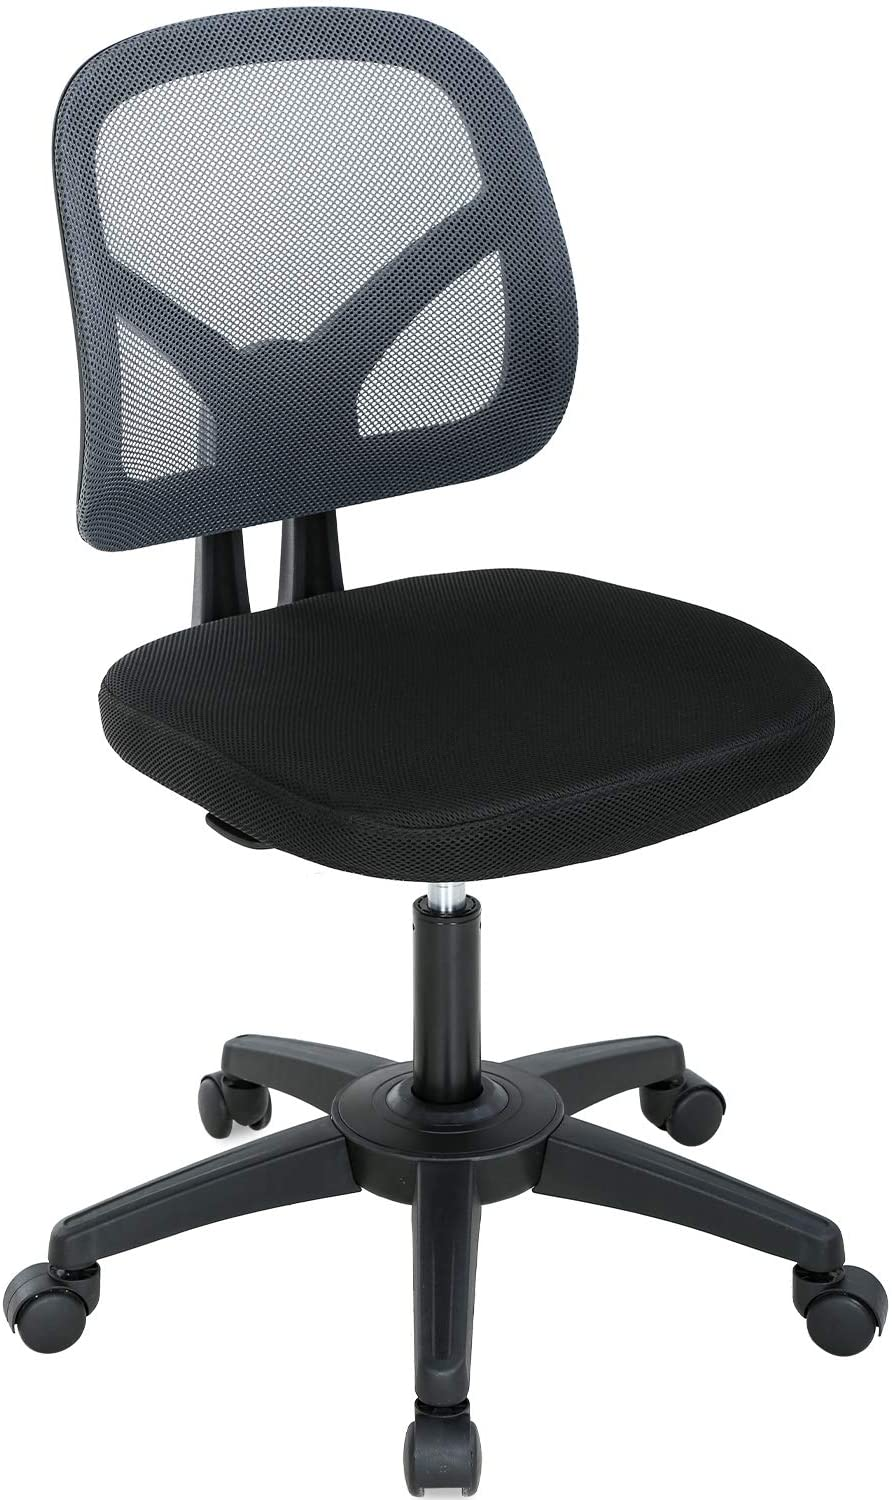 Image of: Home Office Chair Ergonomic Mesh Computer Chair Rolling Adjustable Desk Chair With Lumbar Support Swivel Cute Task Chair For Adults Women Girls White Walmart Canada